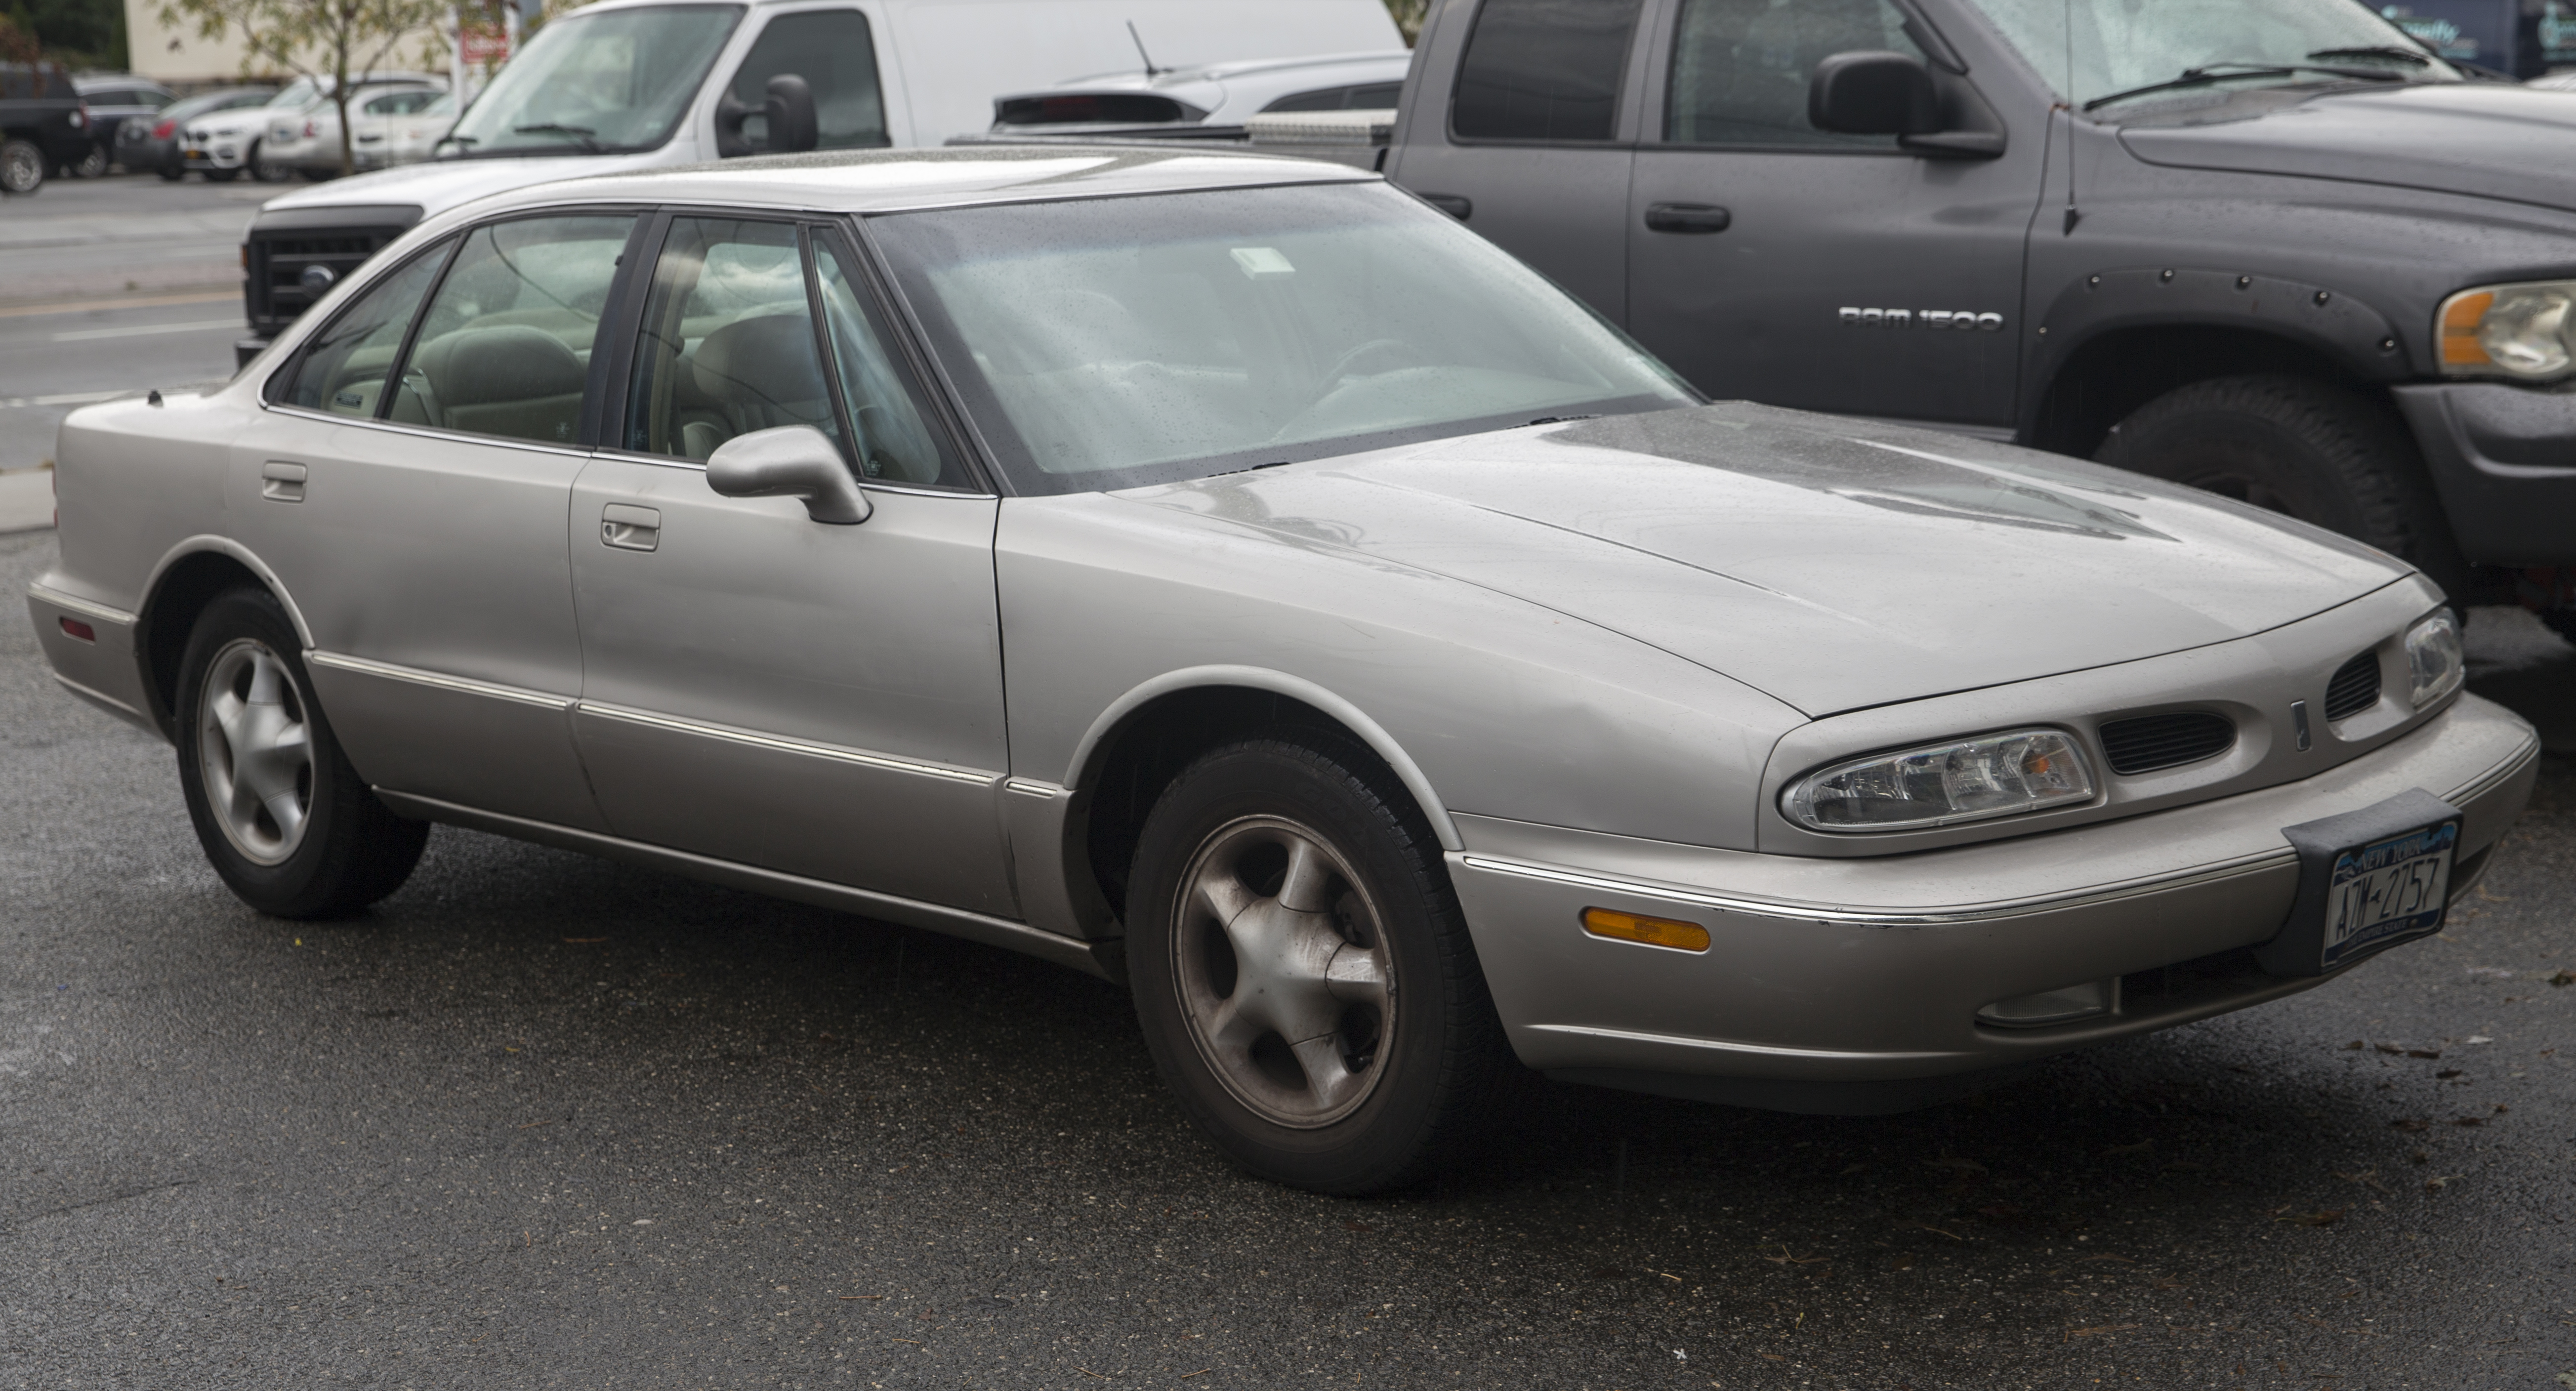 file 1996 oldsmobile lss champagne front right jpg wikimedia commons wikimedia commons